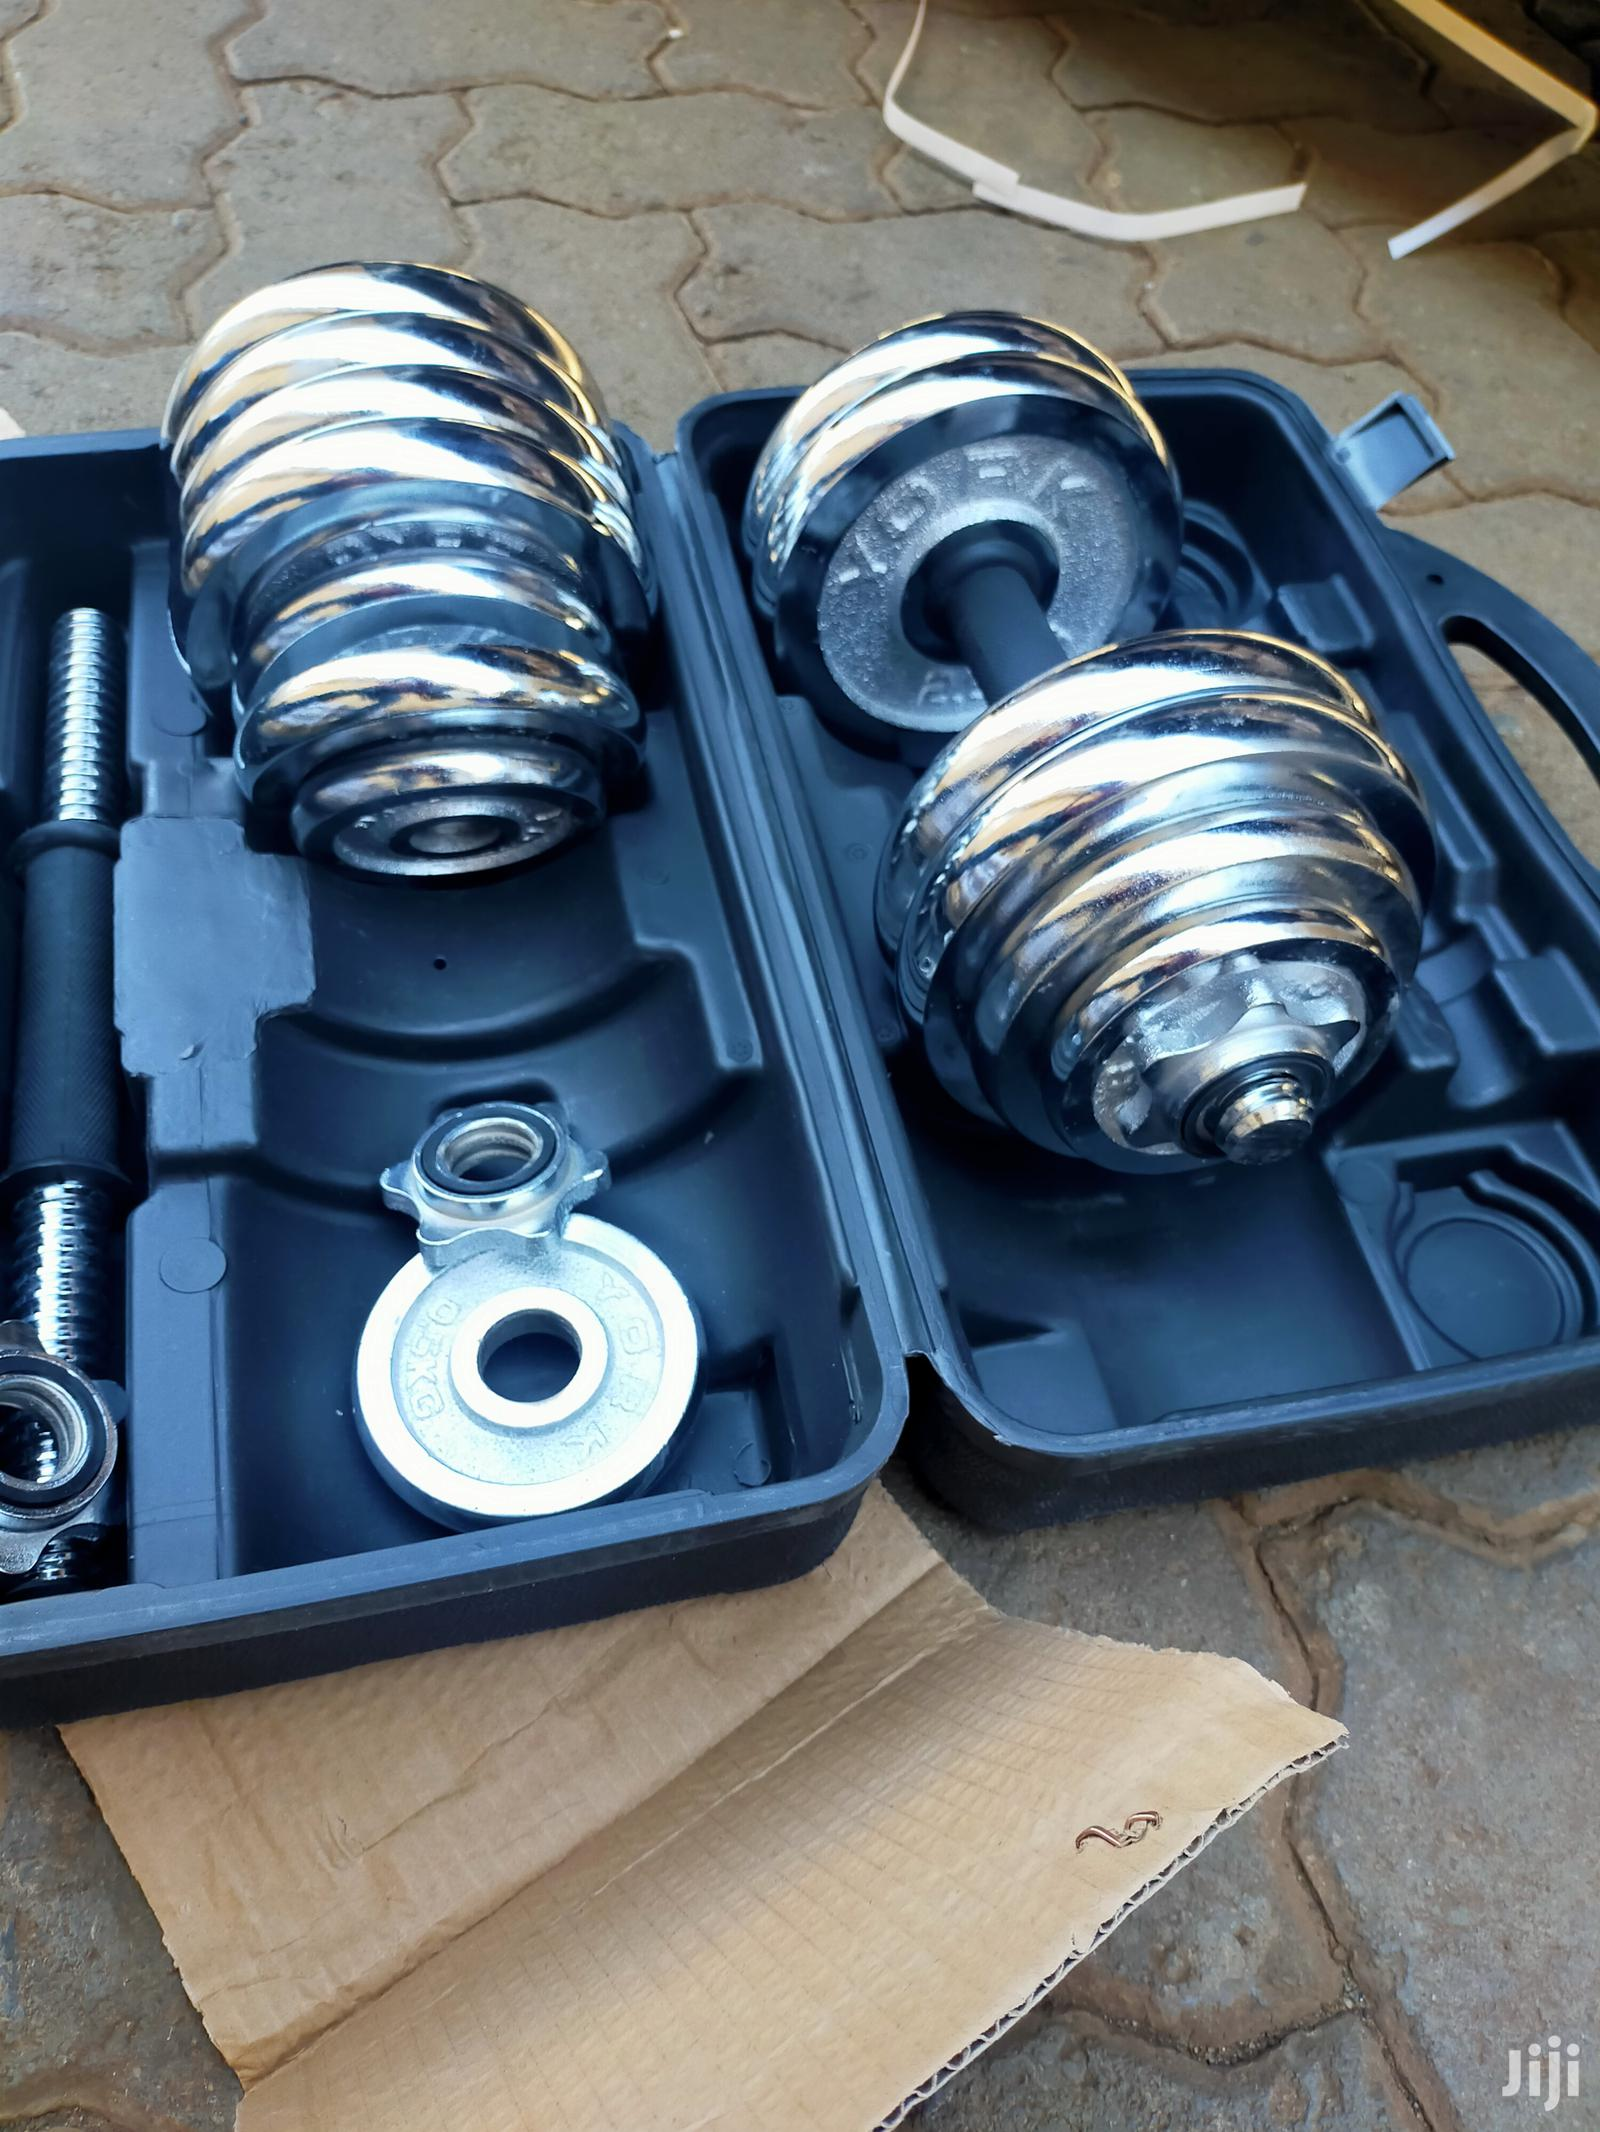 30 Kg Dumbell Set Adjustable Heavy Duty With Briefcase Porta